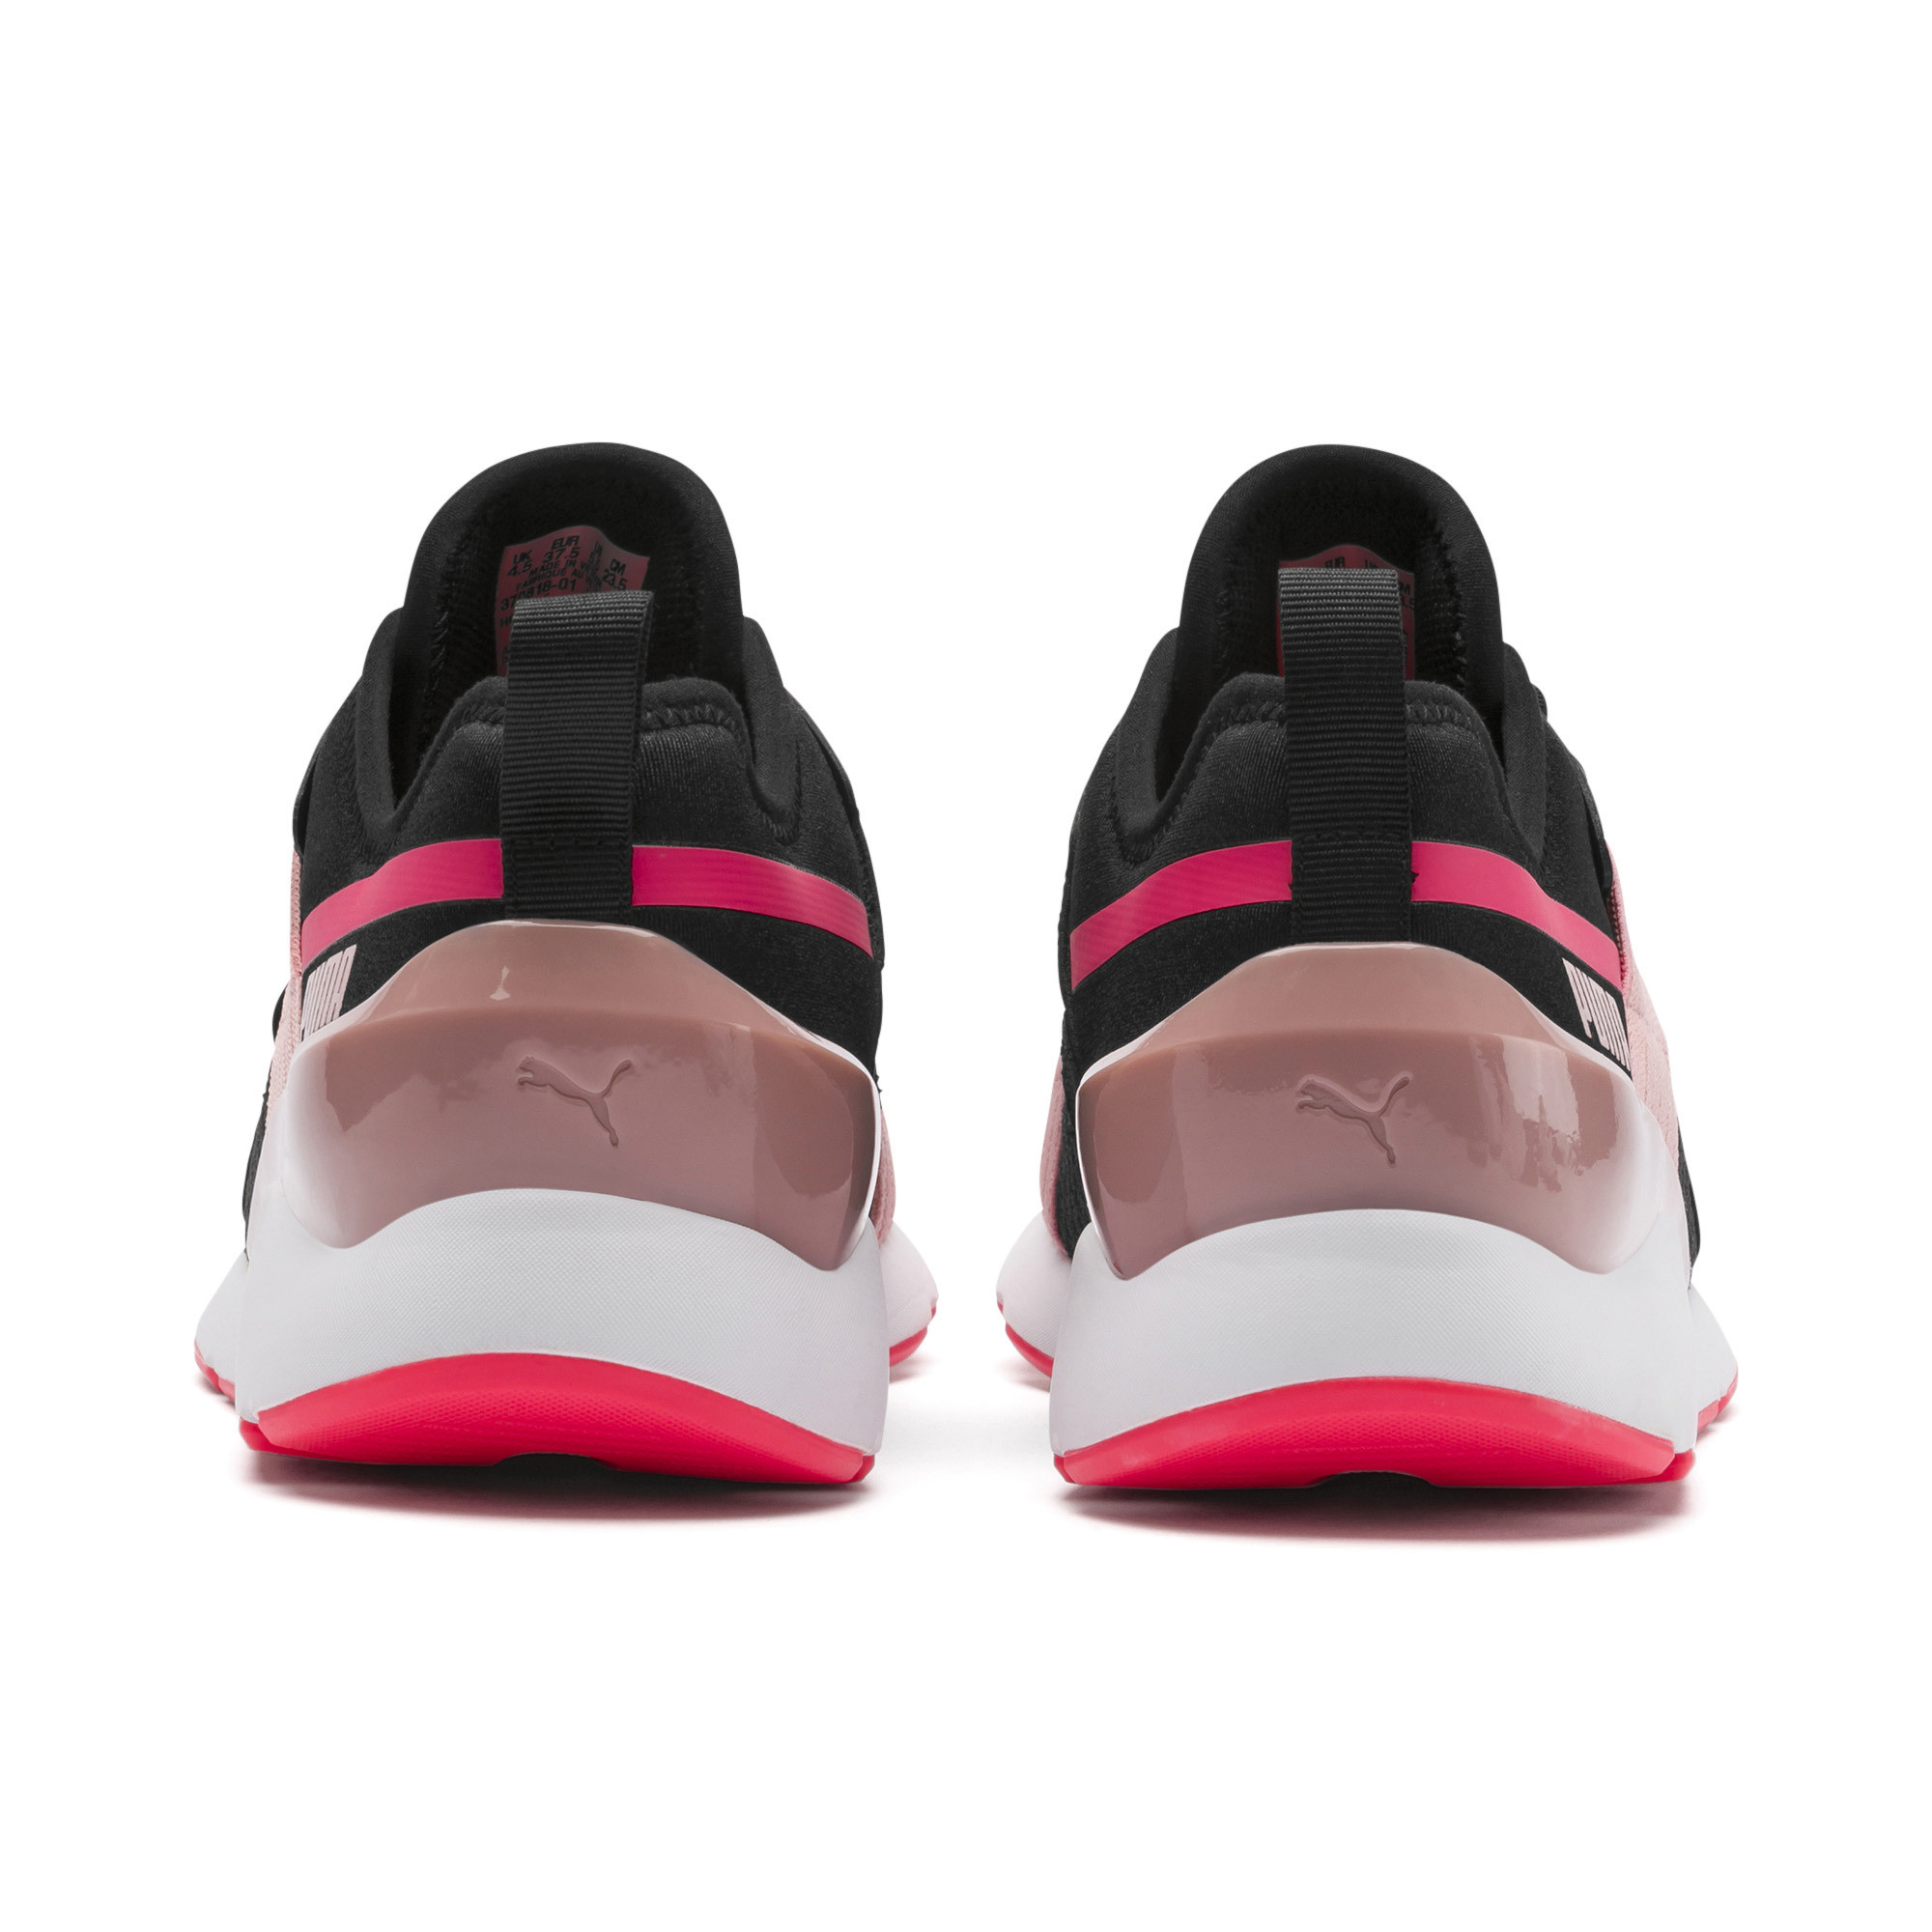 PUMA-Muse-X-2-Women-039-s-Sneakers-Women-Shoe-Evolution thumbnail 16